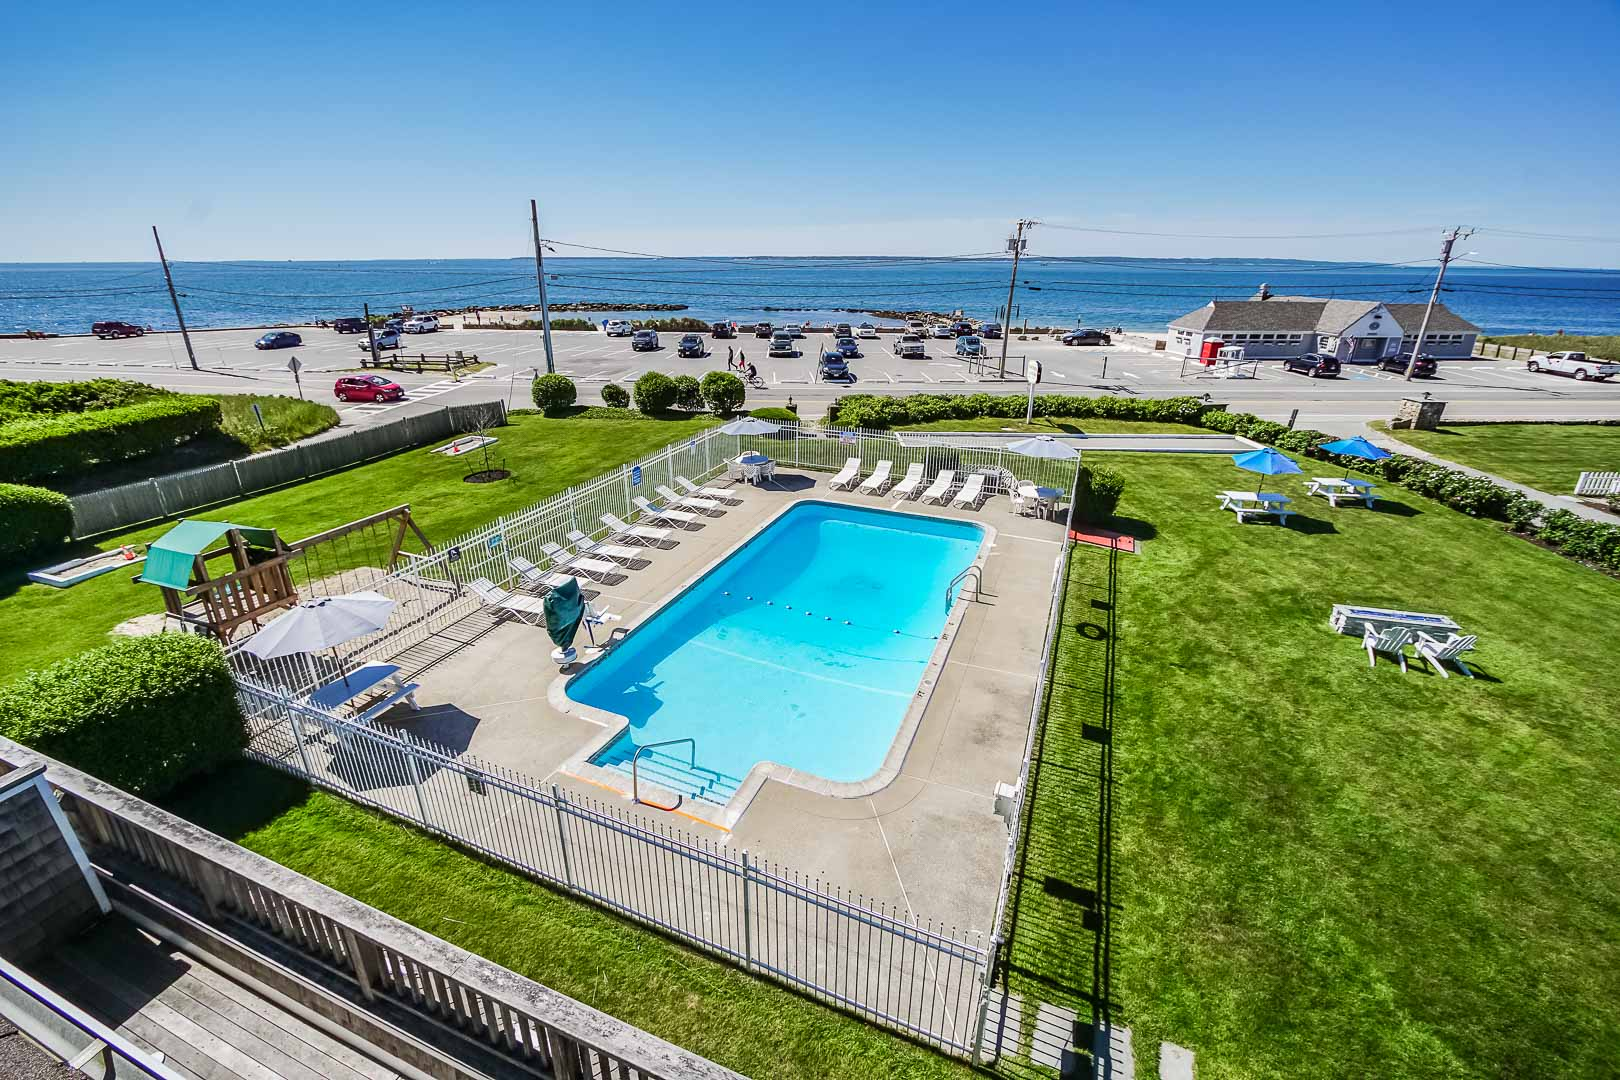 A scenic view of the pool at VRI's Beachside Village Resort in Massachusetts.